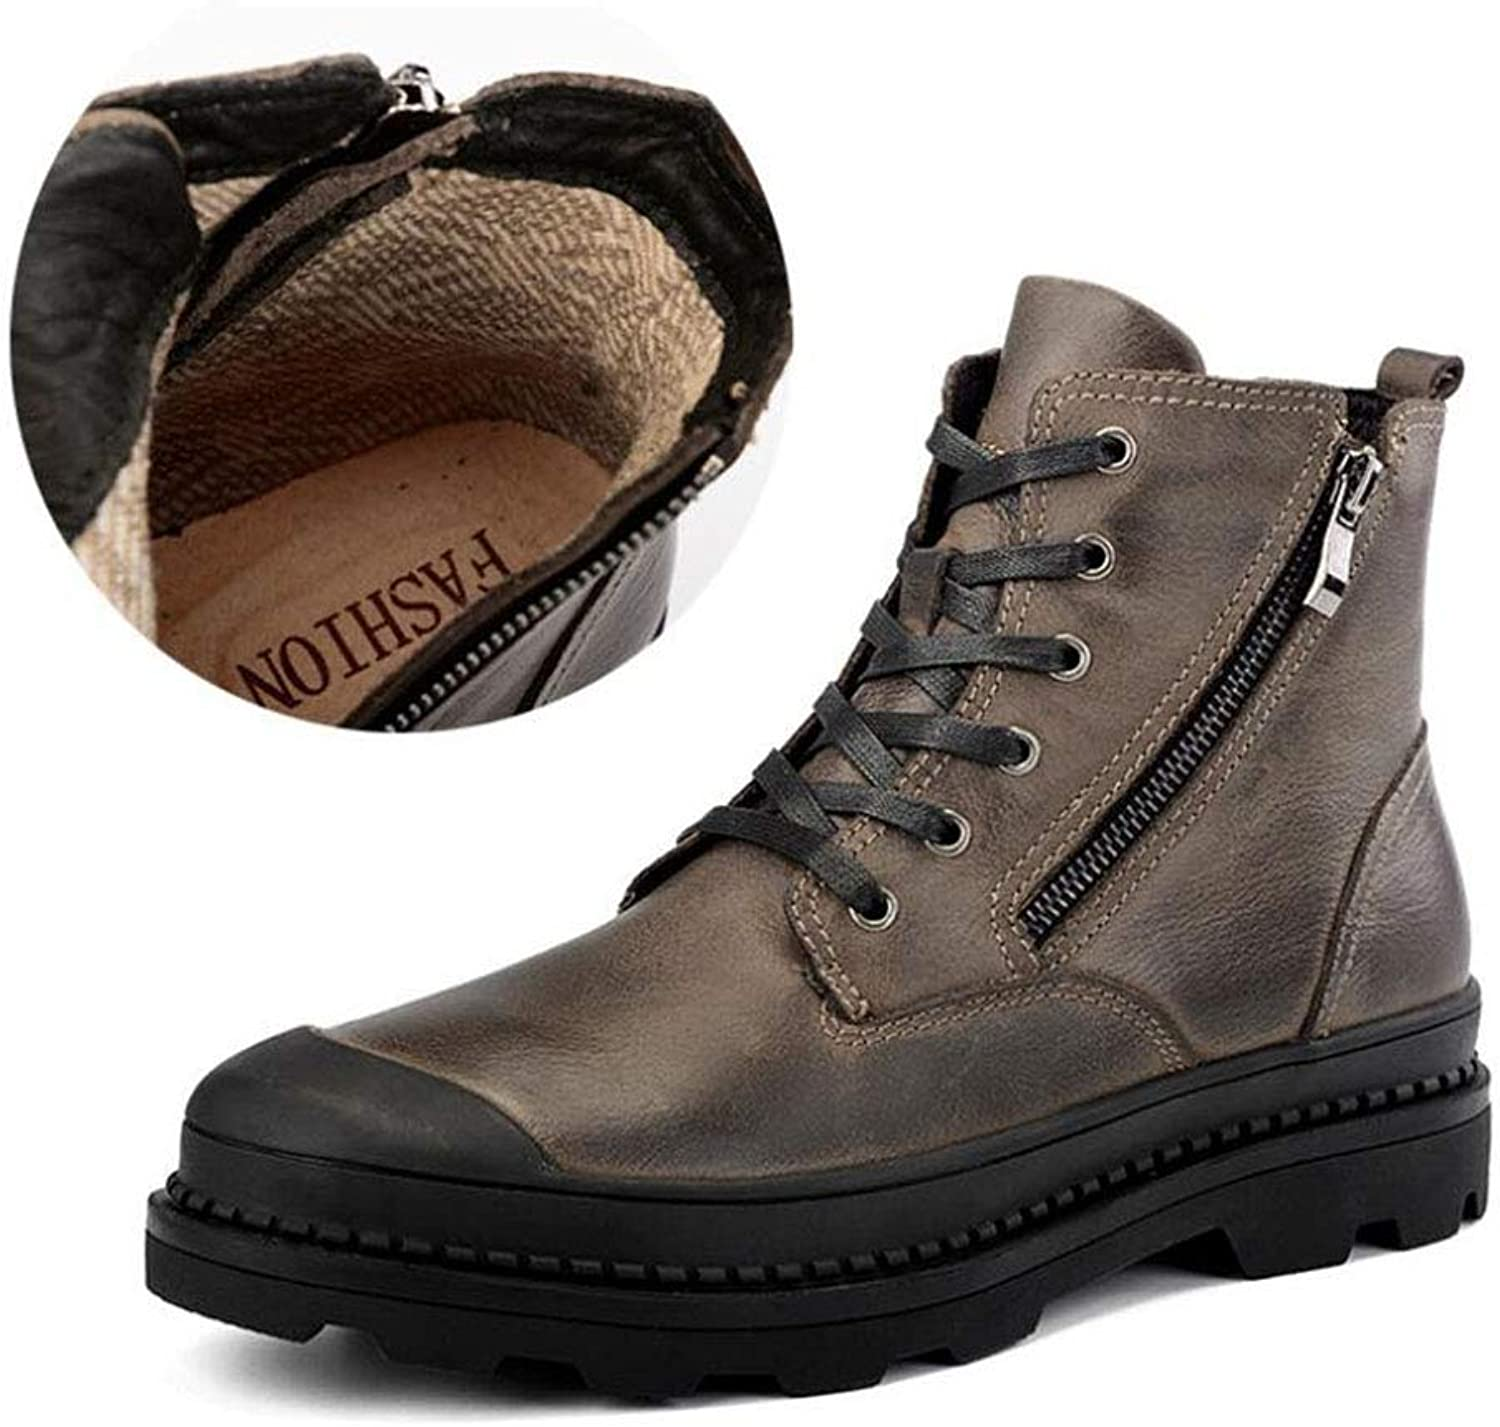 Men's Boots,Spring Winter,Leather Martin Style,Comfort Cotton Boots,Running shoes,Athletic shoes, Outdoor Exercise Sneakers,Casual Hiking shoes,Tooling shoes,B,41